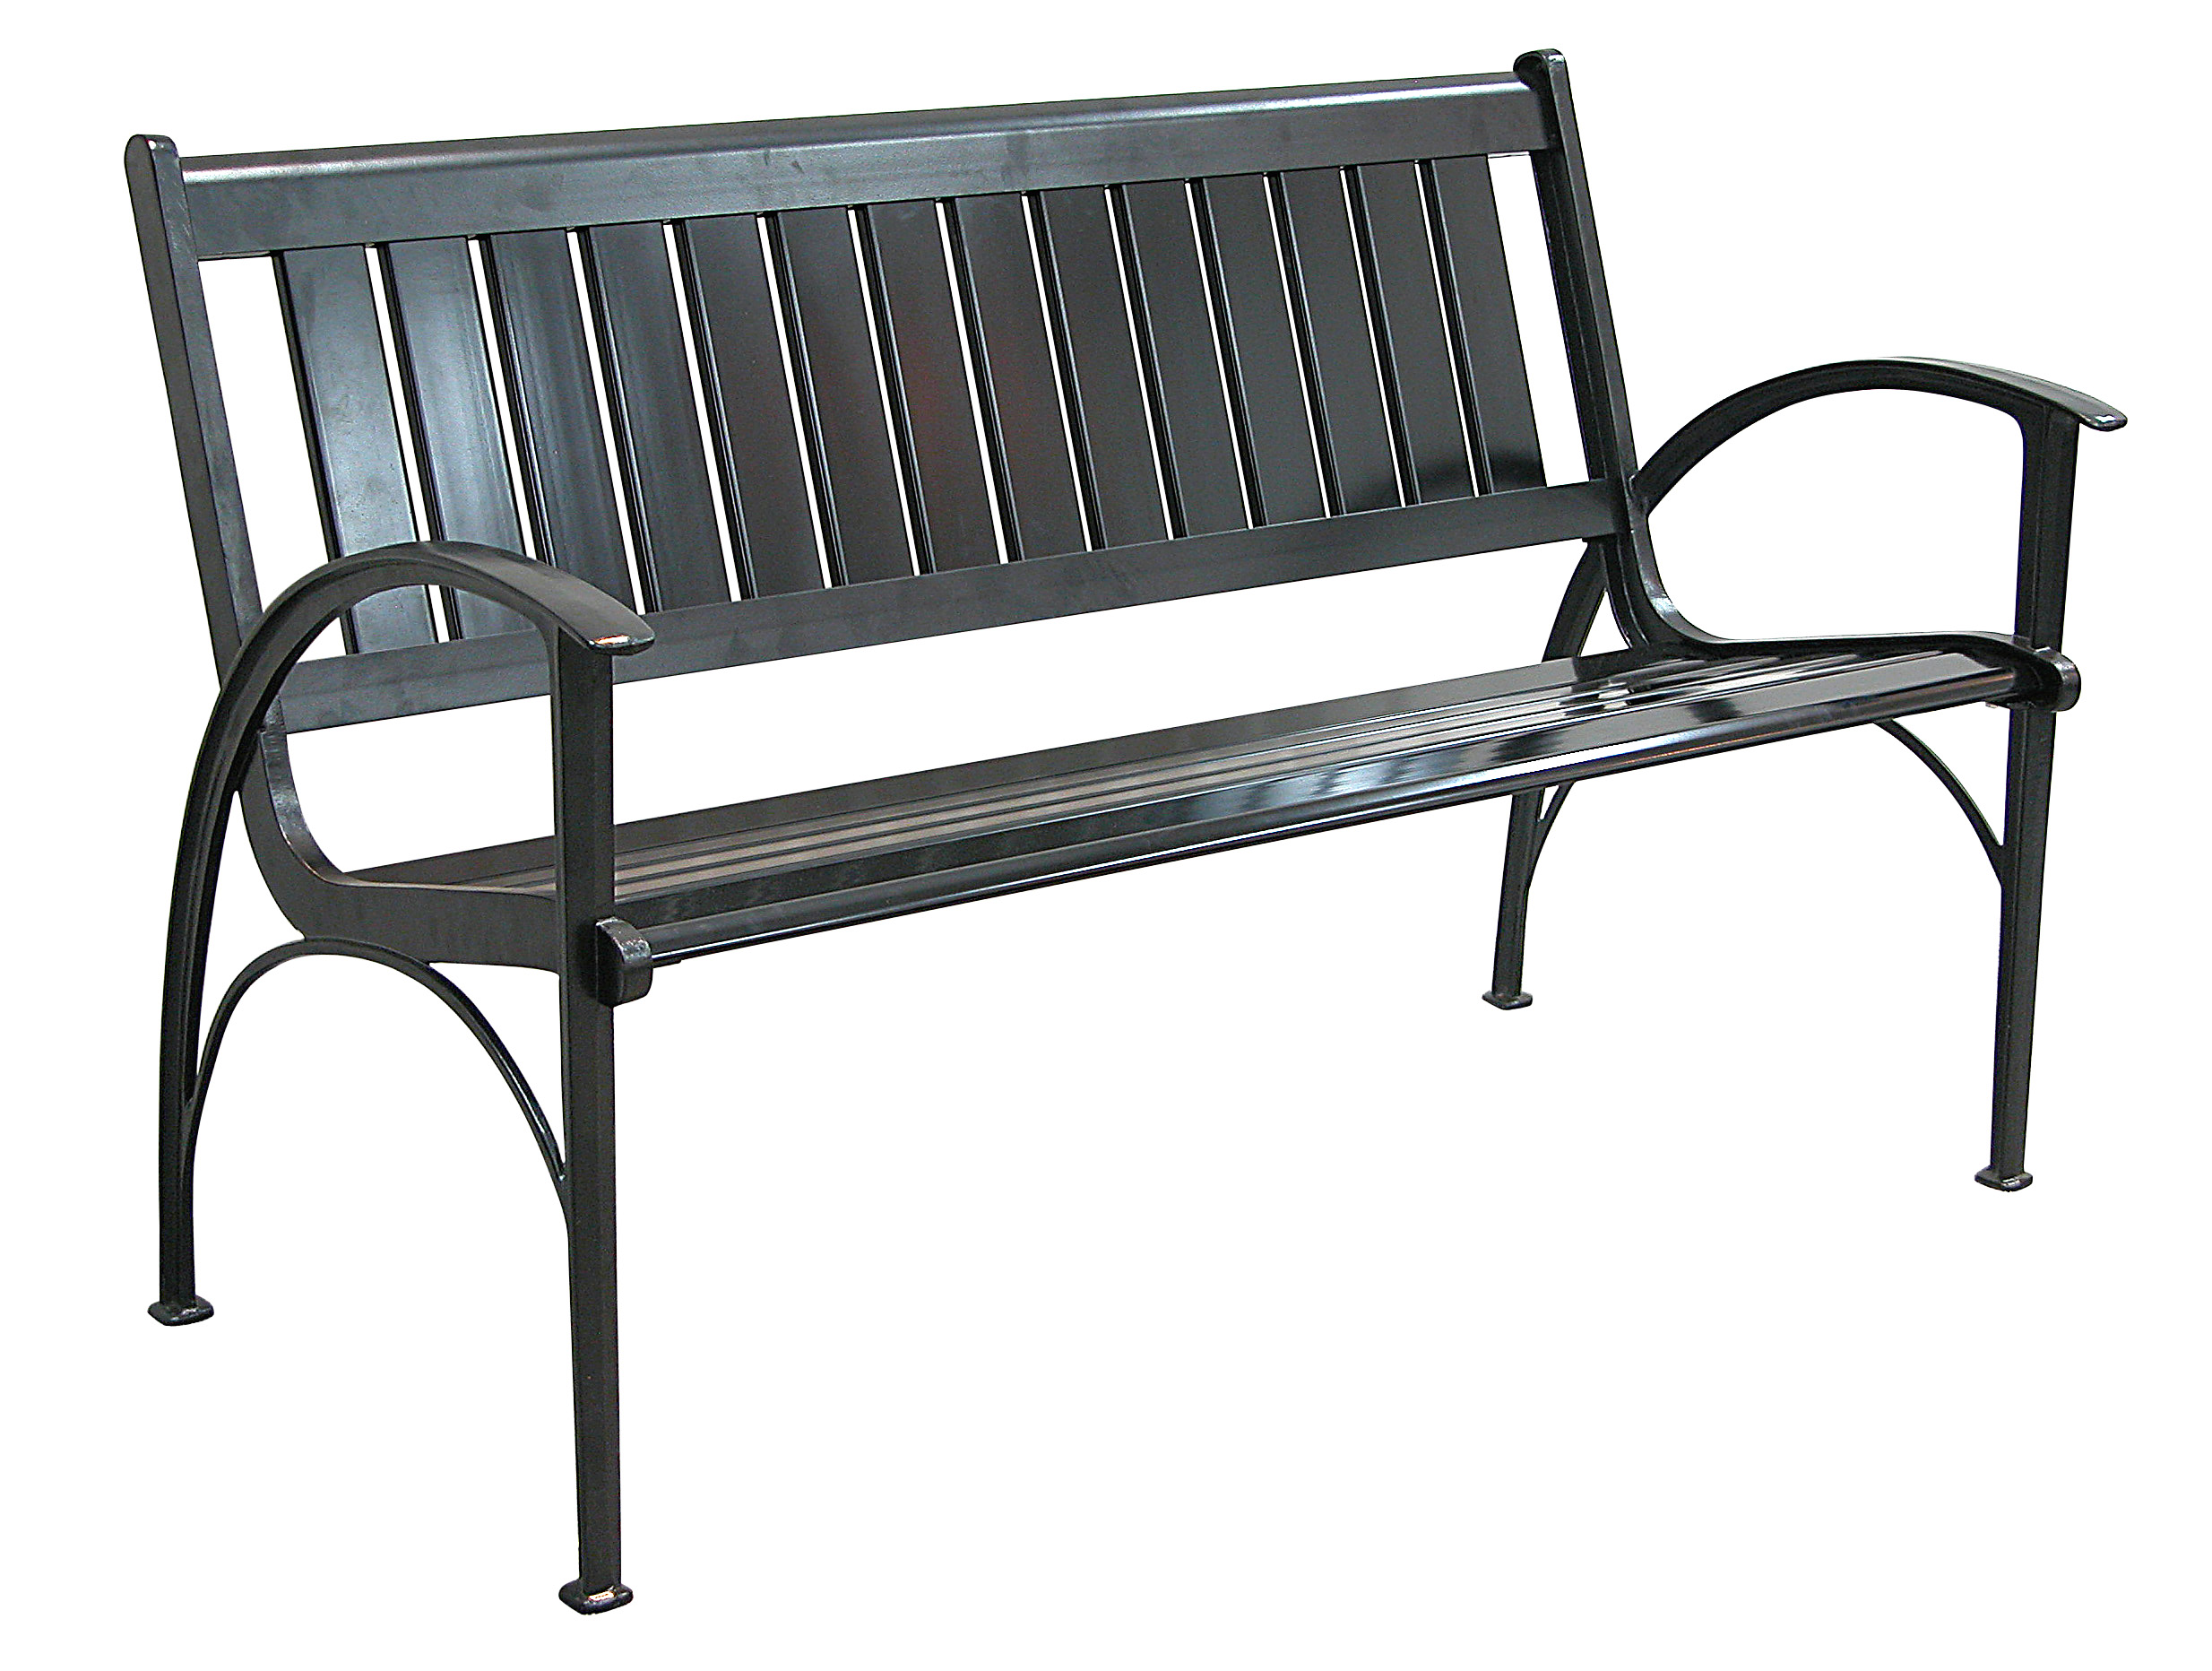 patio furniture bench contemporary cast aluminum black On outdoor furniture bench